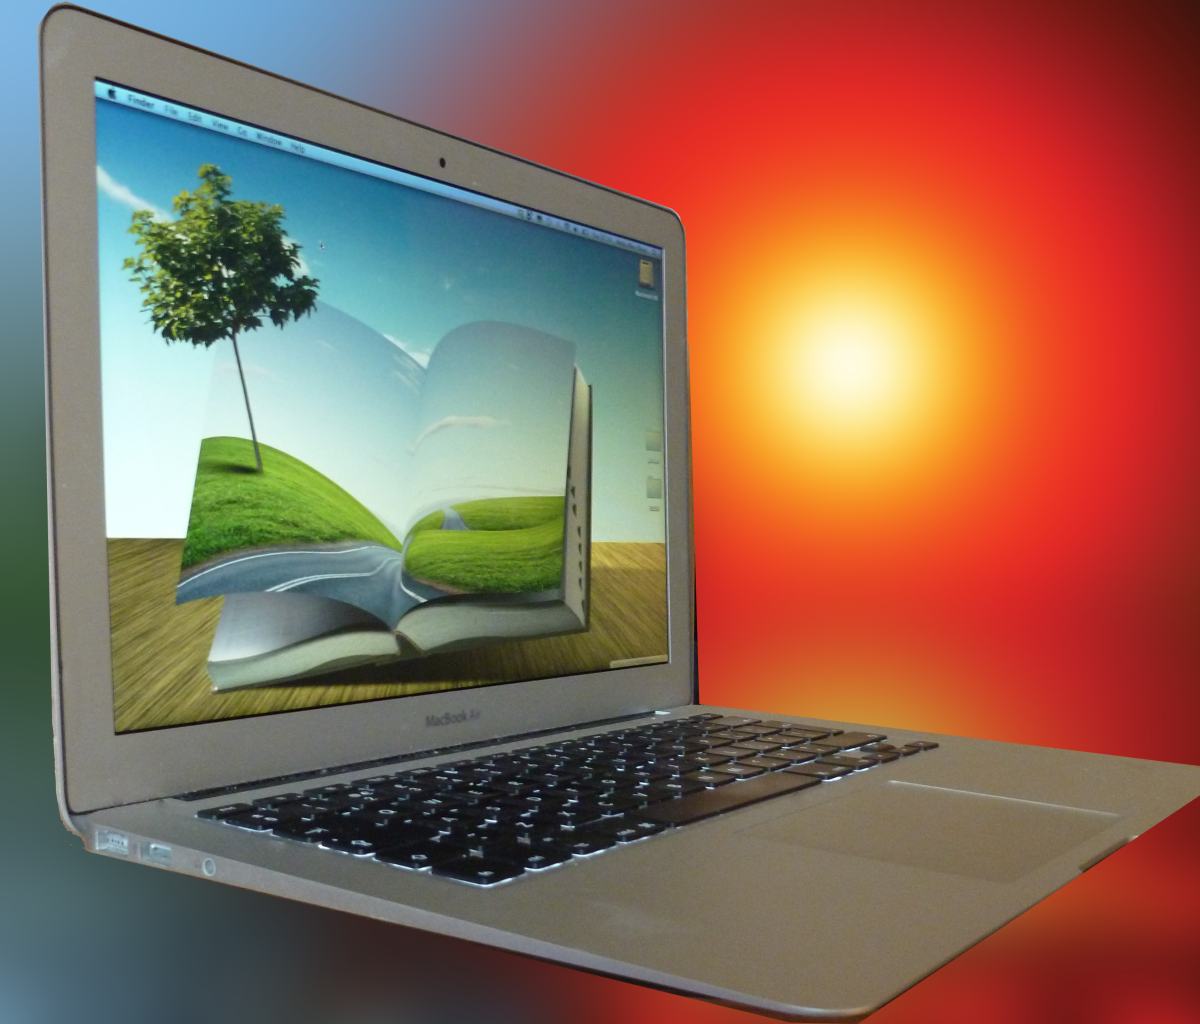 Best Laptop for Photo Editing in 2015